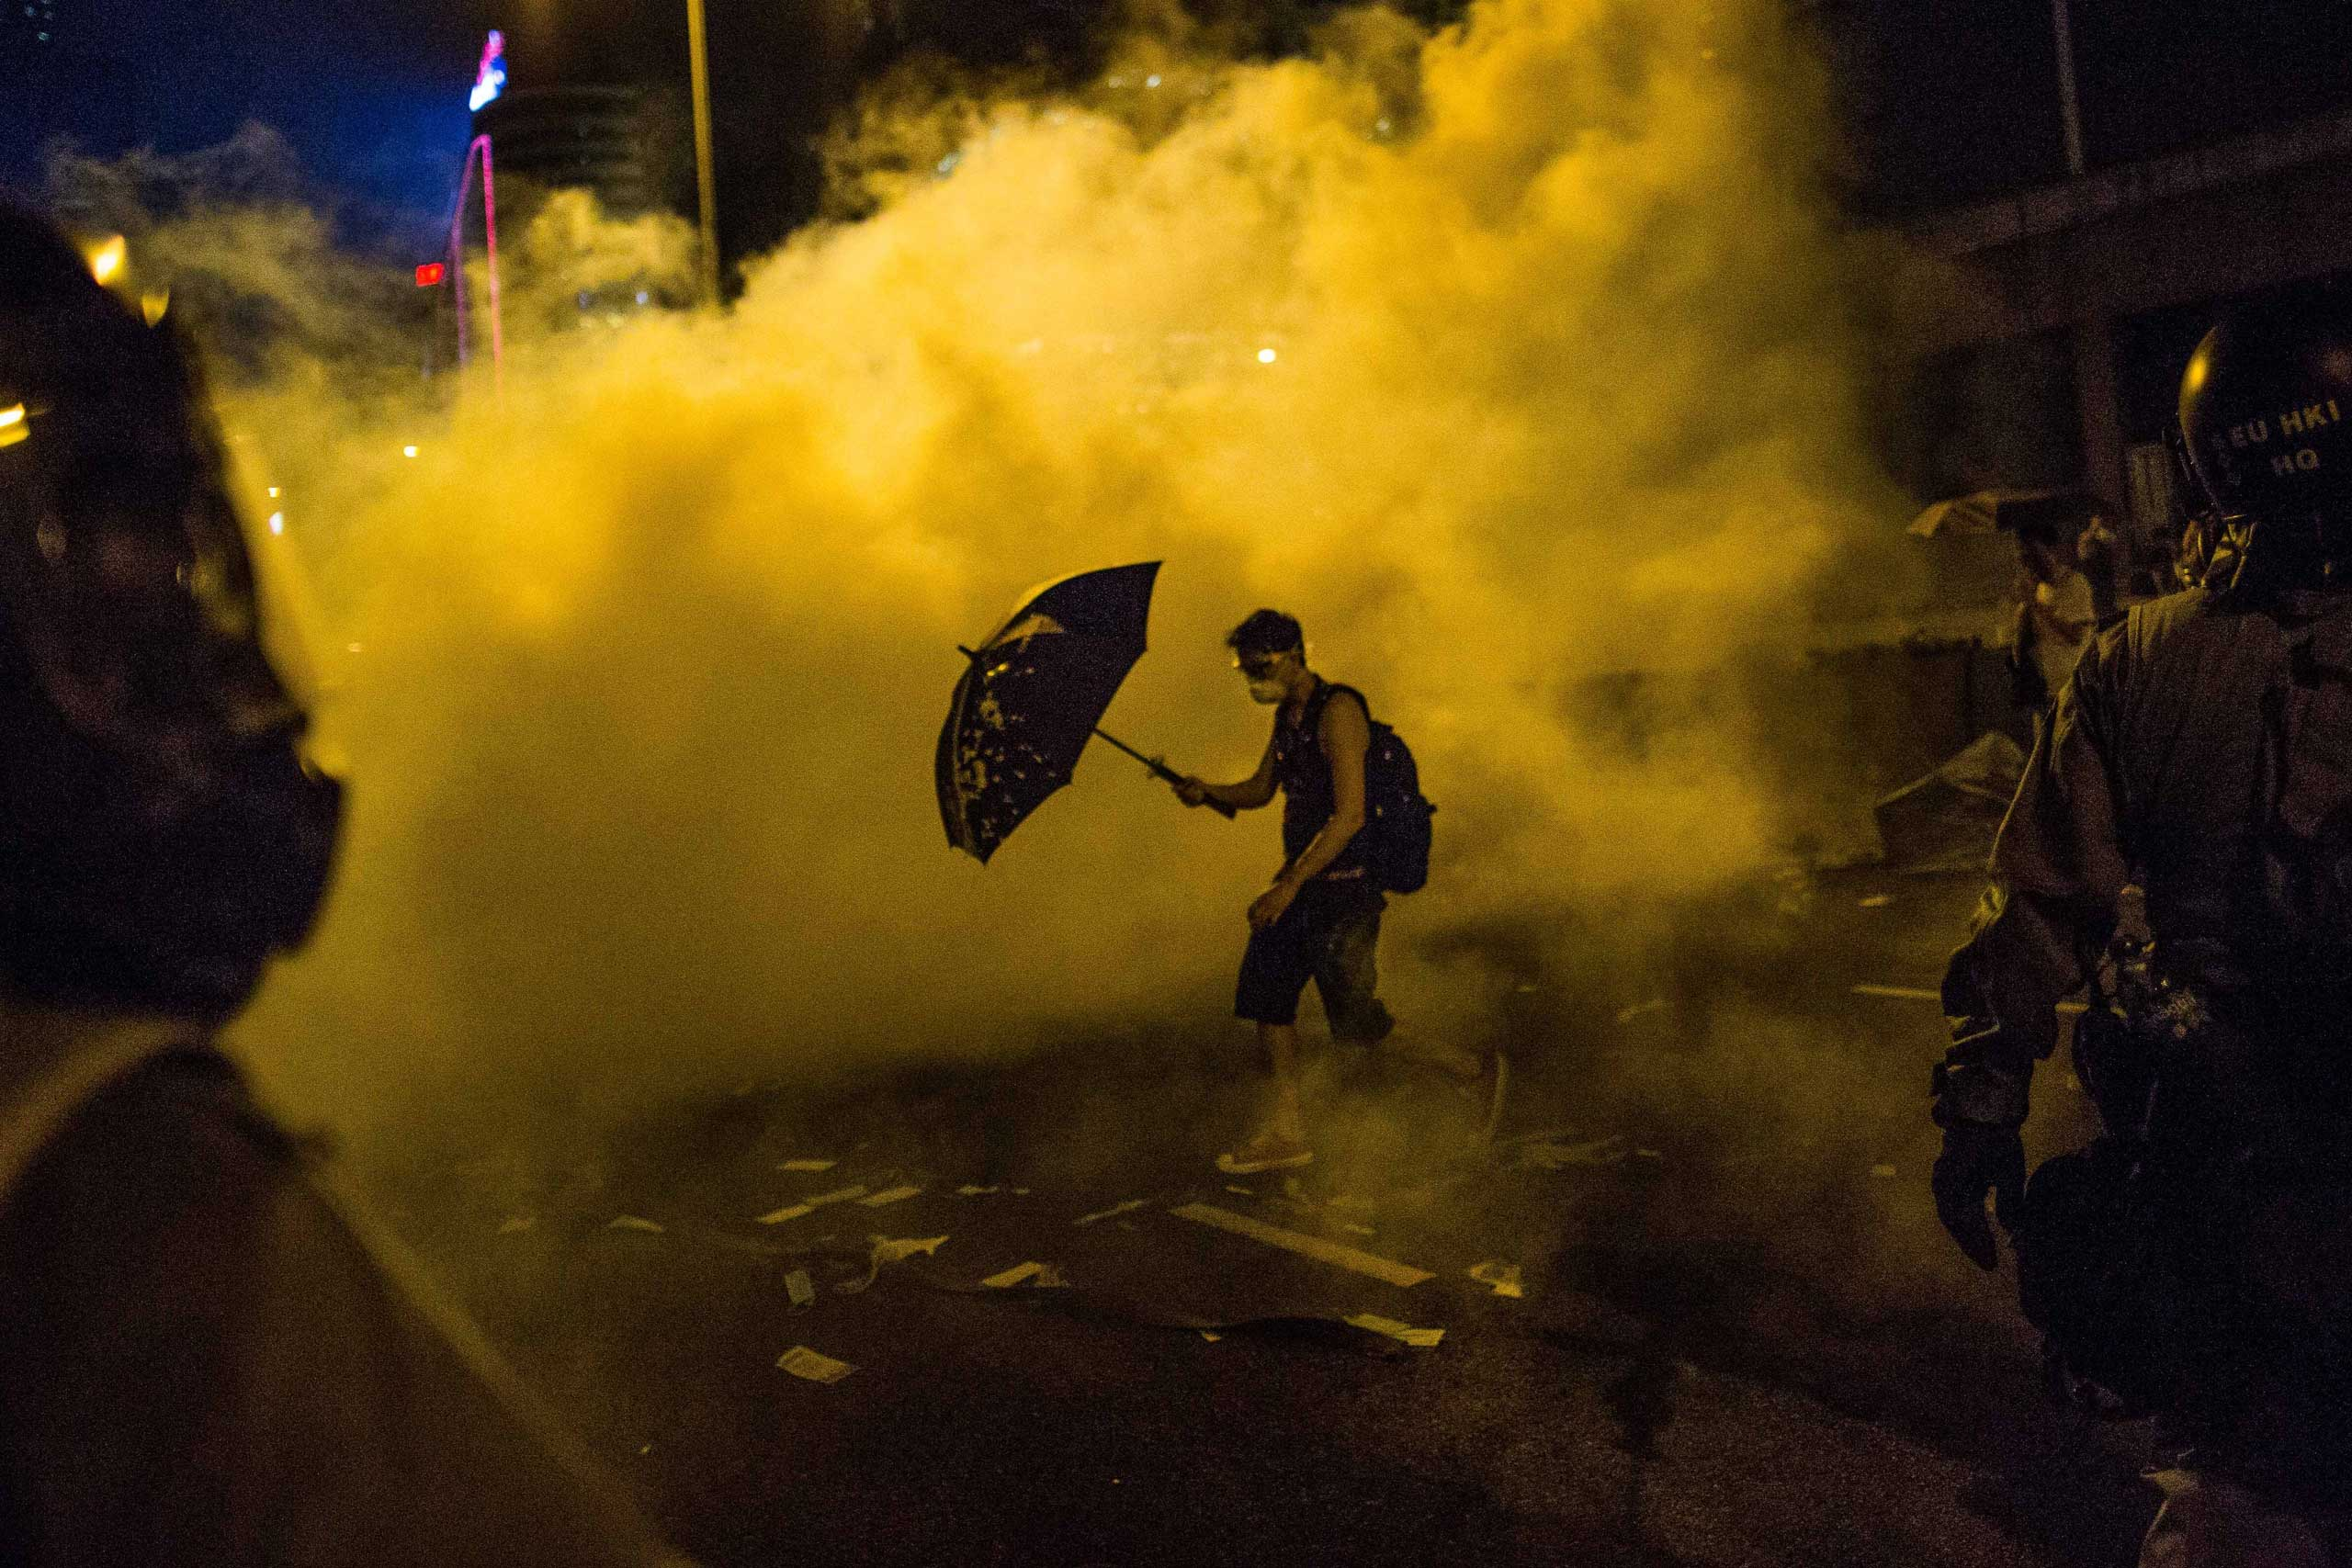 September 28, 2014 - Hong Kong, China: A solitary demonstrator eases through clouds of tear gas holding his umbrella for protection outside Government Headquarters as he's surrounded by riot police. (Todd Darling/Polaris)